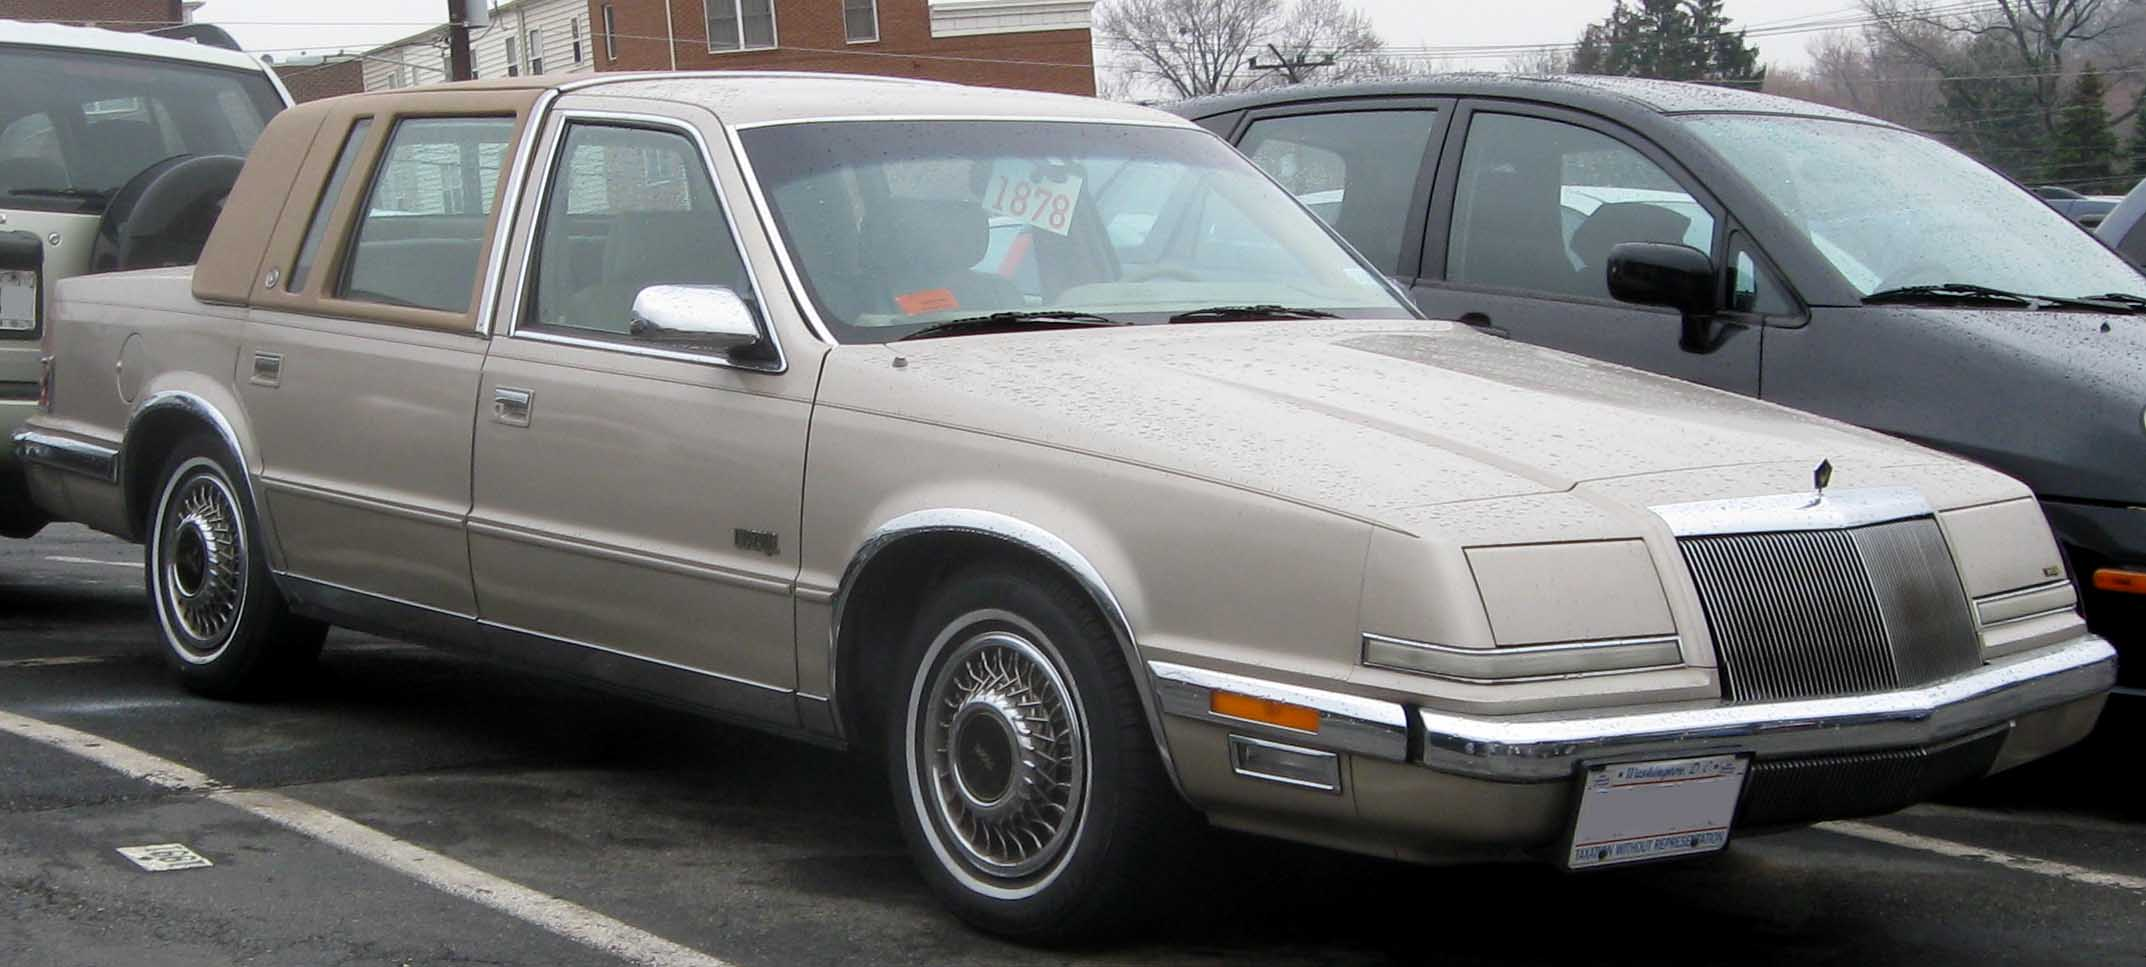 1990 Chrysler Imperial #4